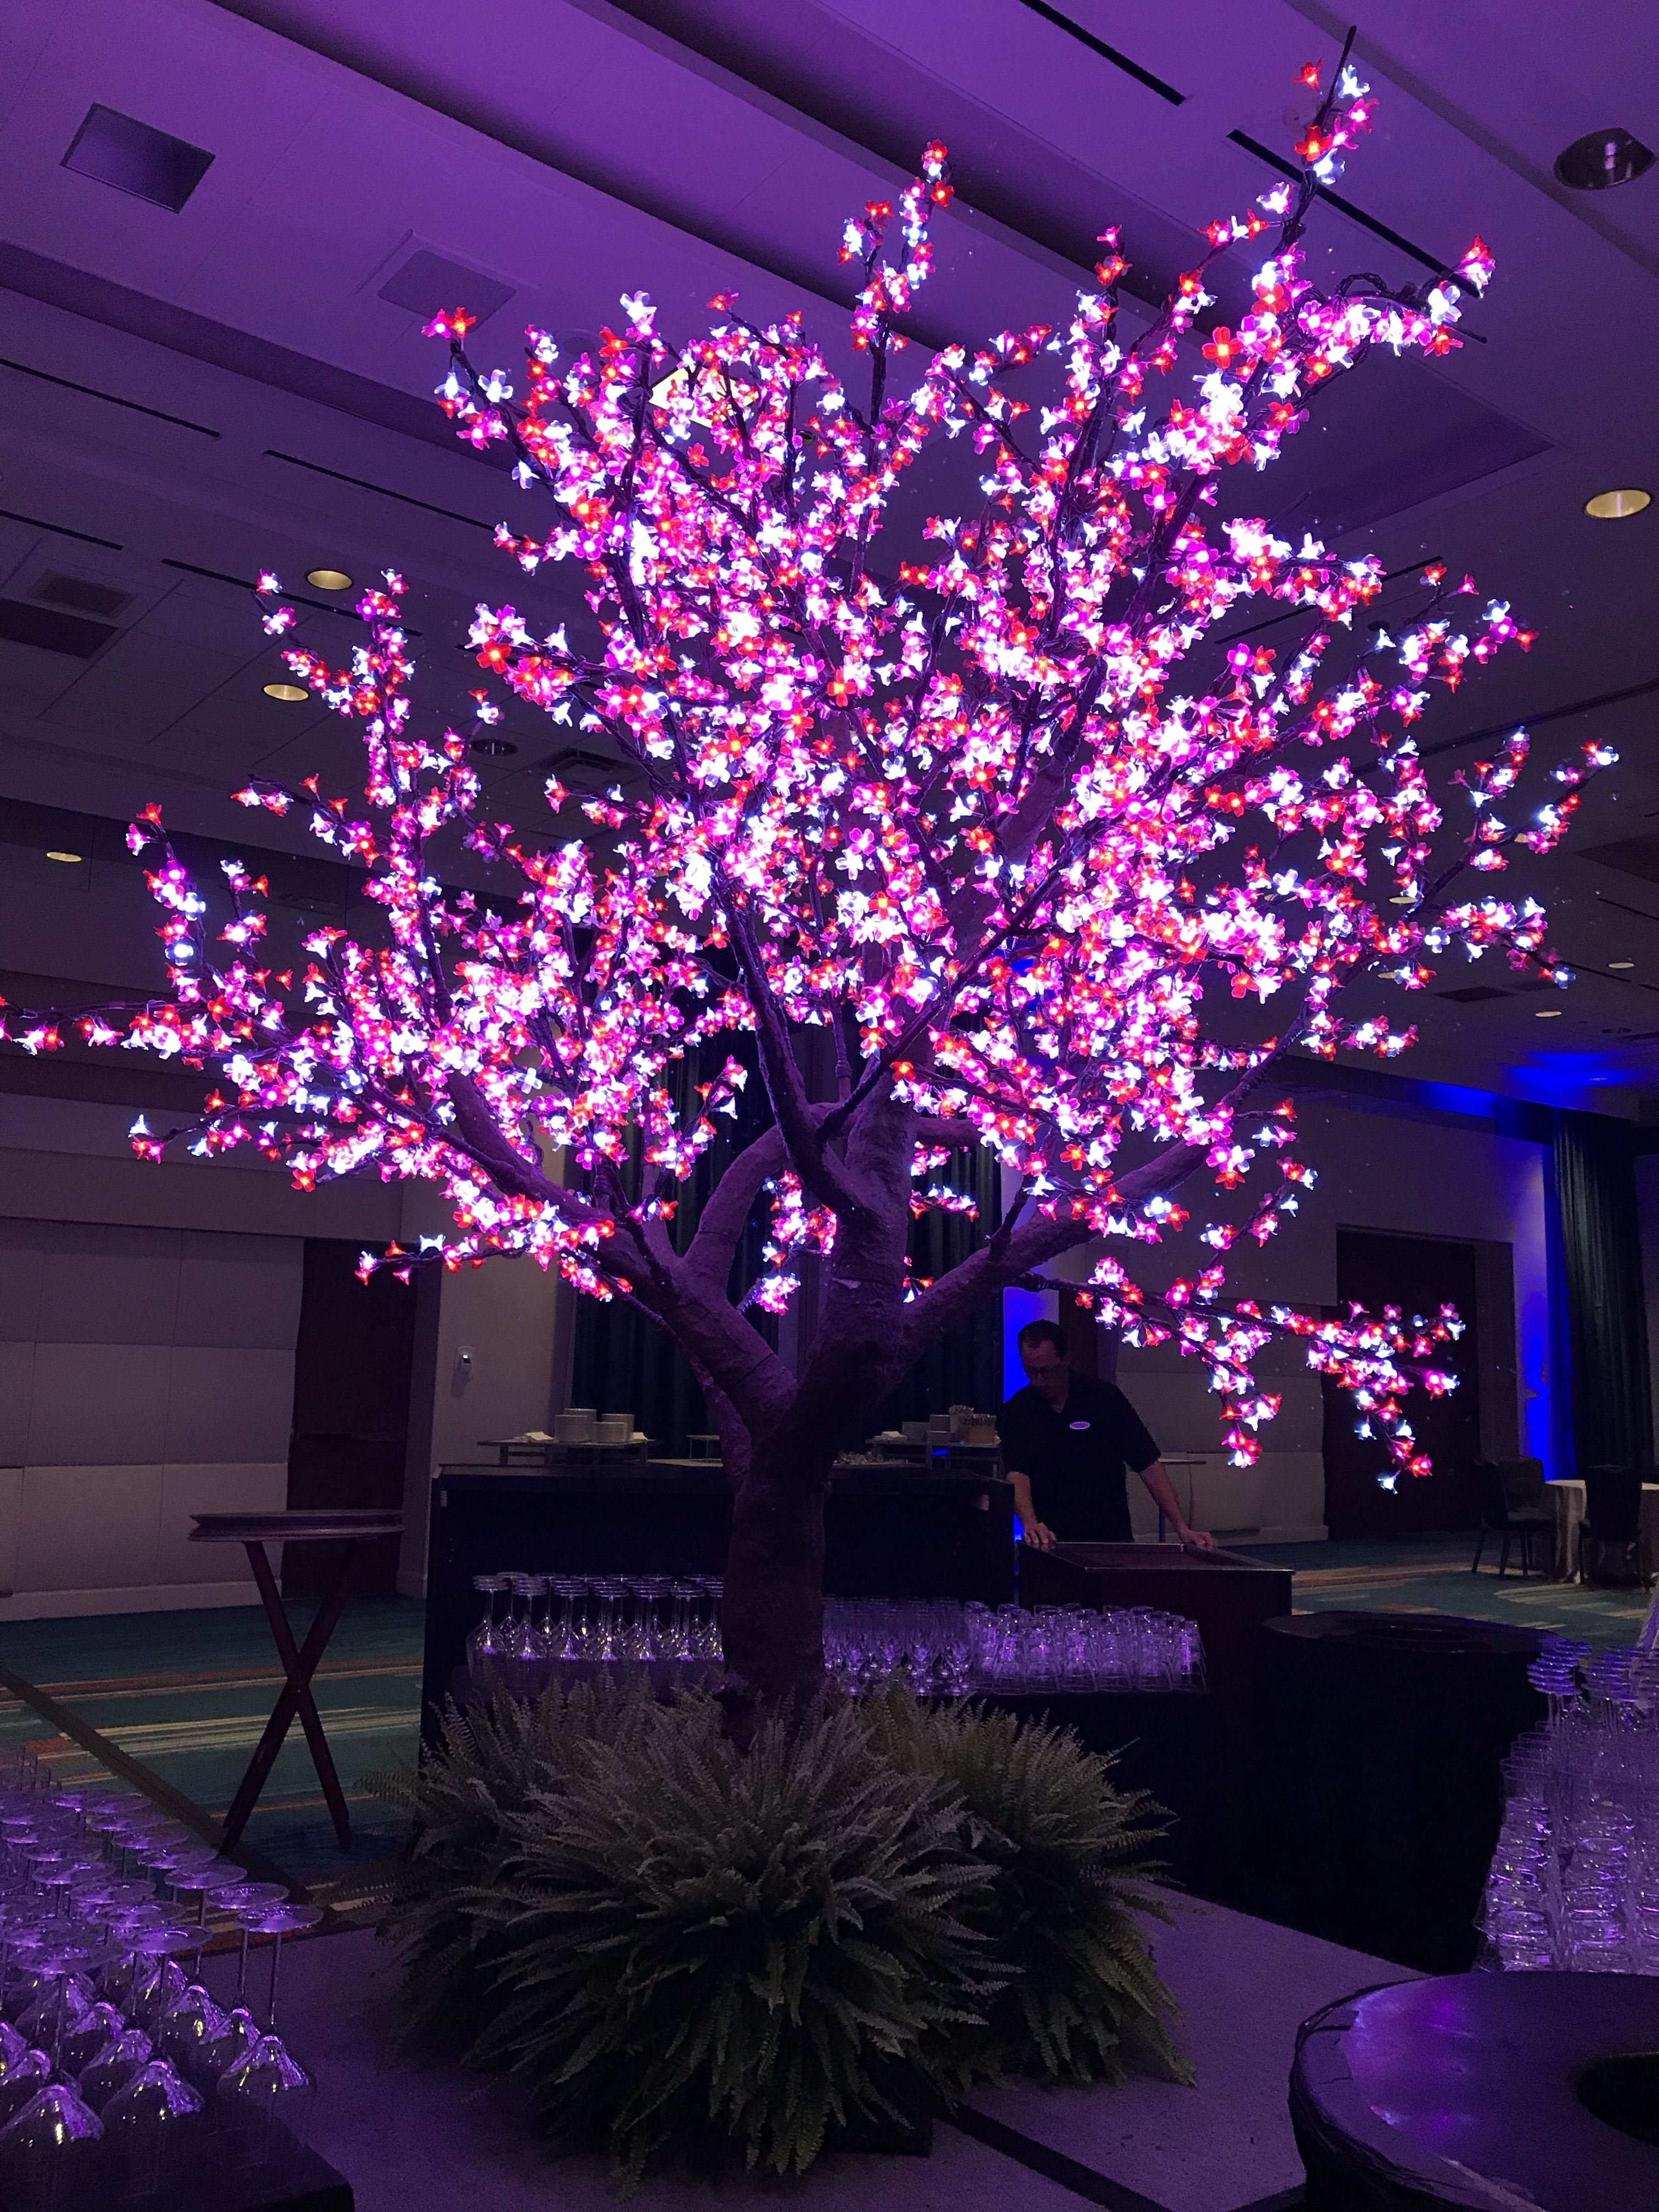 Led Cherry Blossom Trees Add Beauty To Any Room Floridaeventdecor Event Eventmanagement Eventmarketing Eventplanning Event Decor Blossom Trees Event